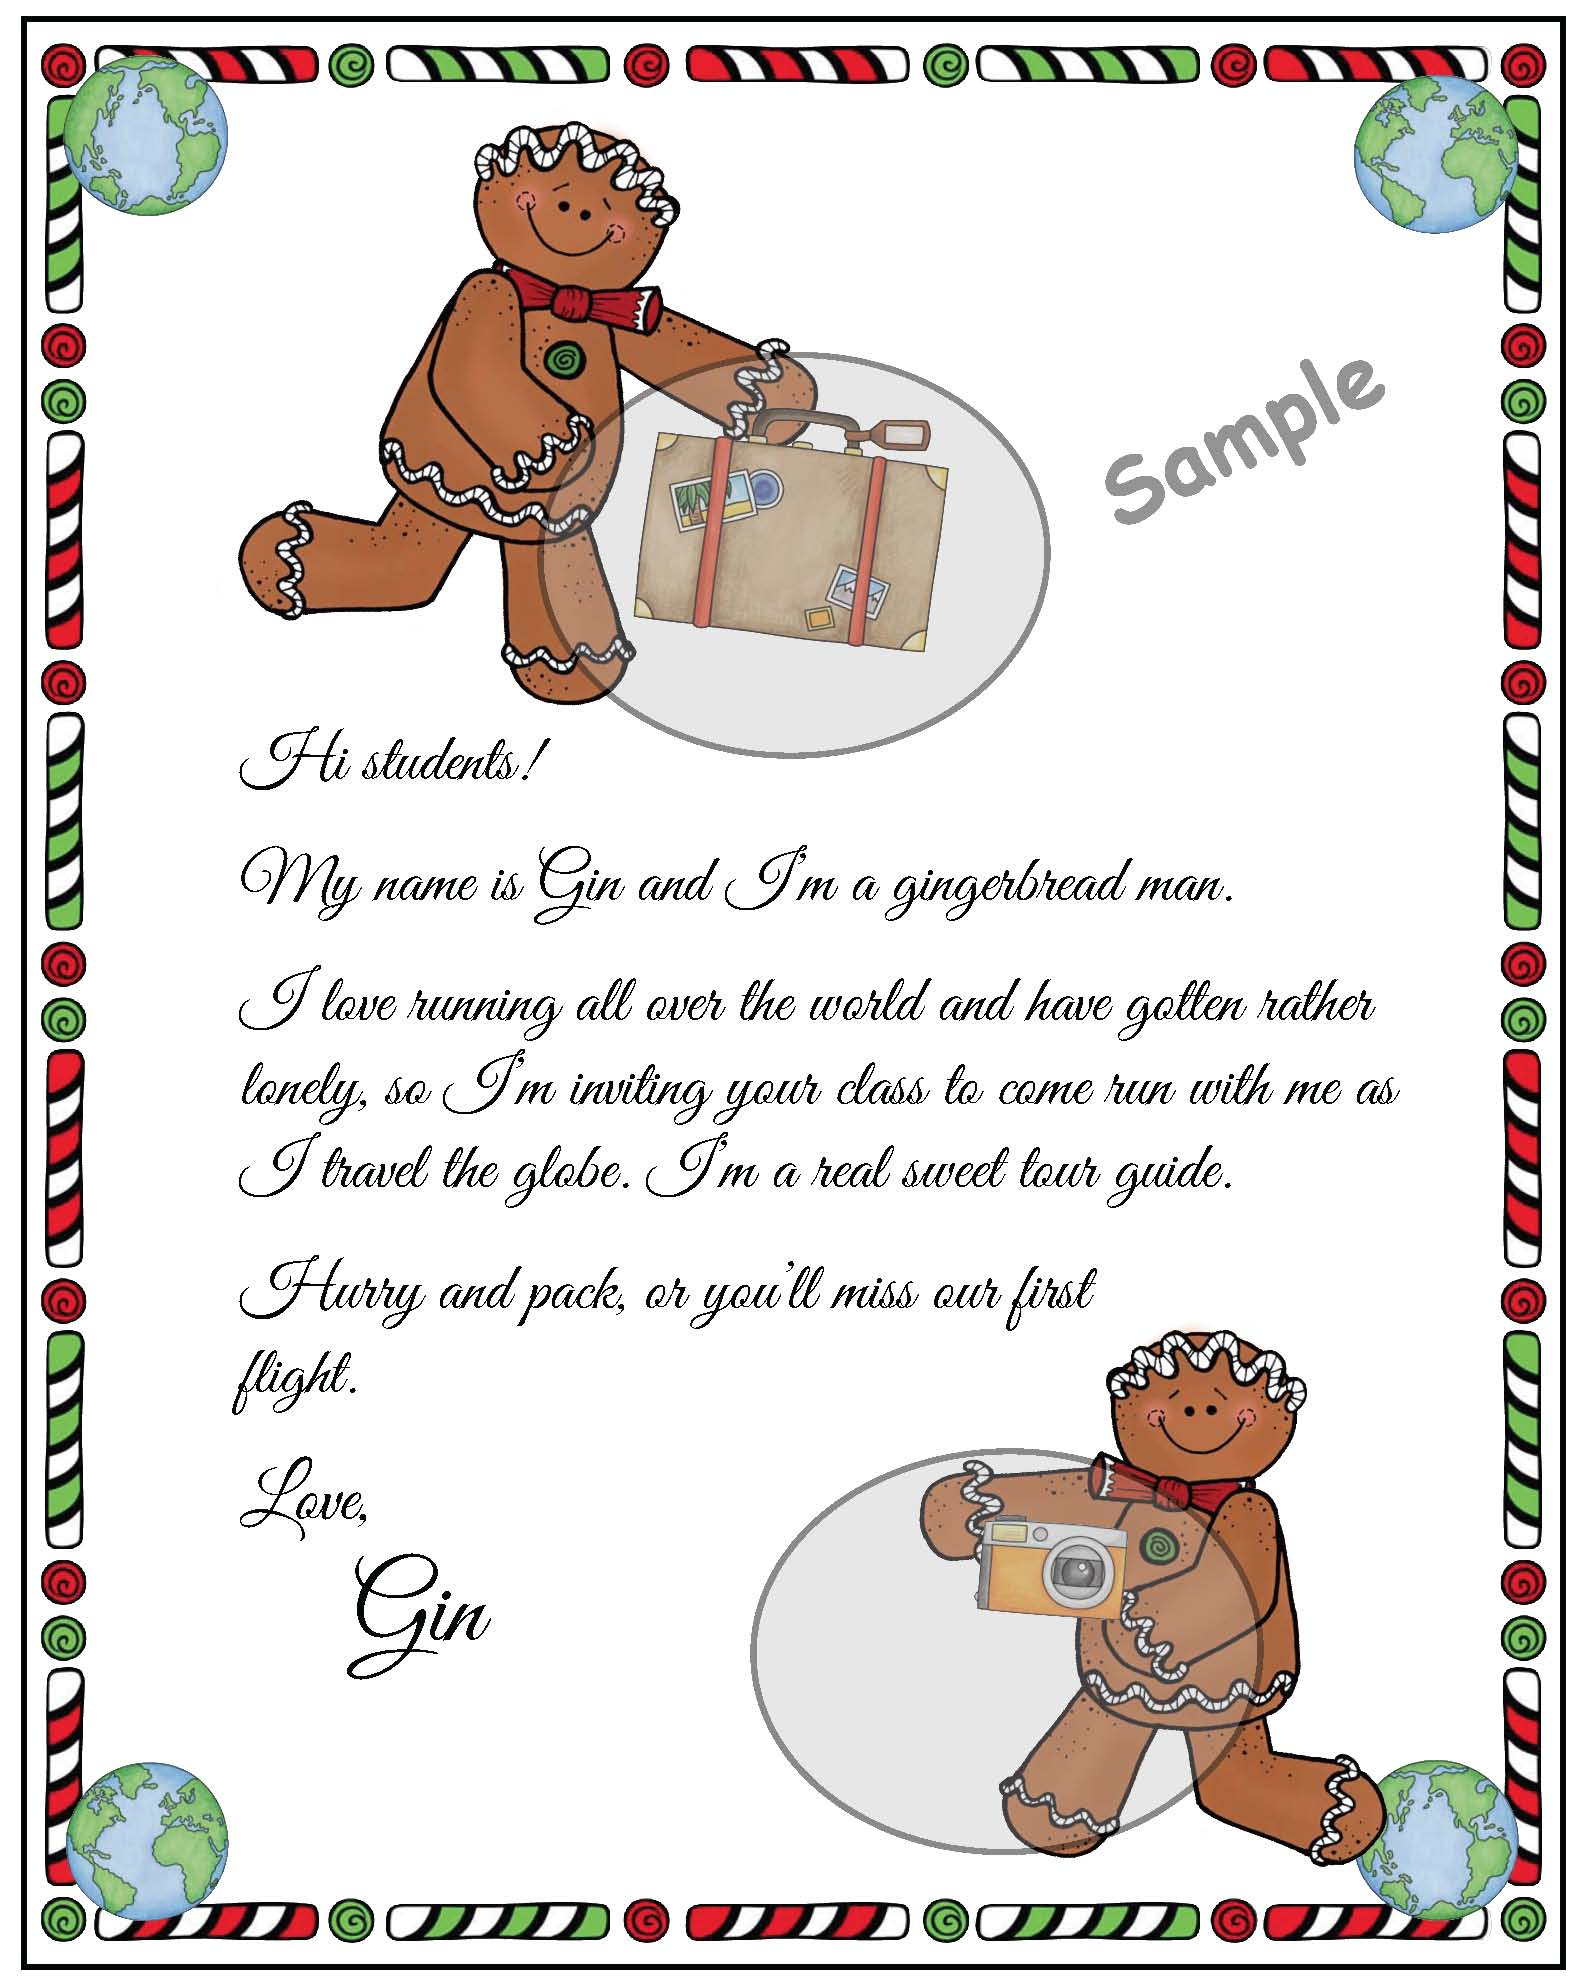 Christmas Around The World activities, Xmas around the world activities, Christmas crafts, geography activities for early elementary, gingerbread activities, passports for school, geography passports, passport craft, passport stamps, suitcase stamps, suitcase stickers, travel stickers, passport stamps, December writing prompts,